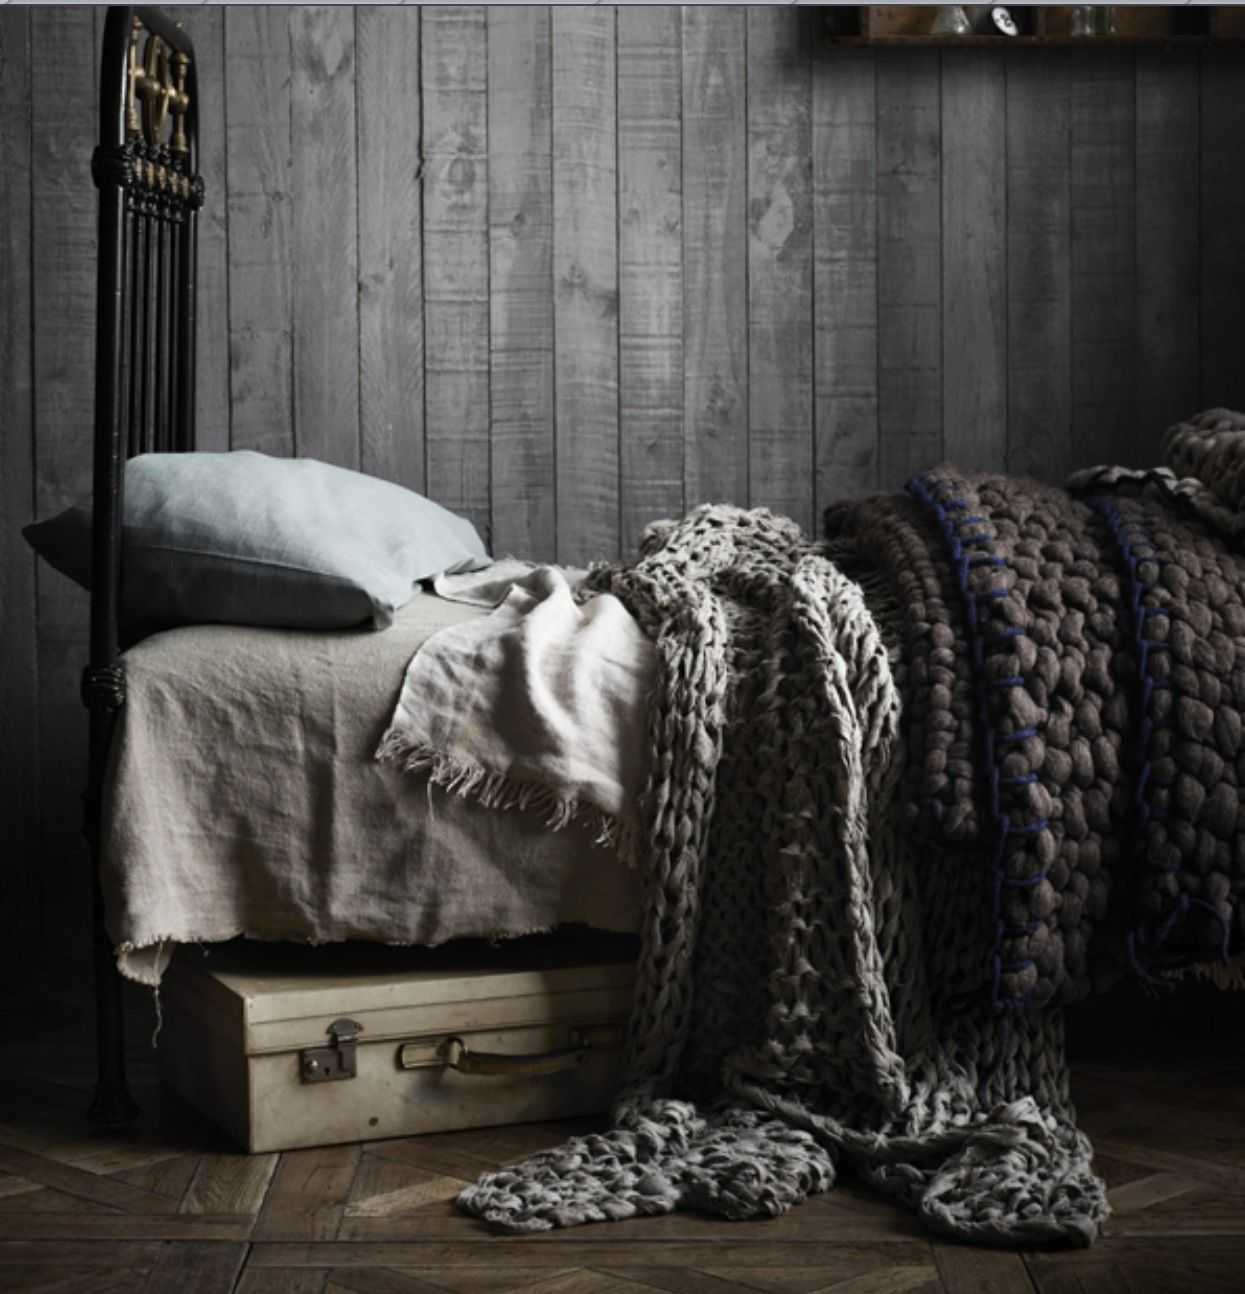 Tricot Decoration Interieur Cozy Thick Knit Blankets Throws Comfy Beds Pinterest